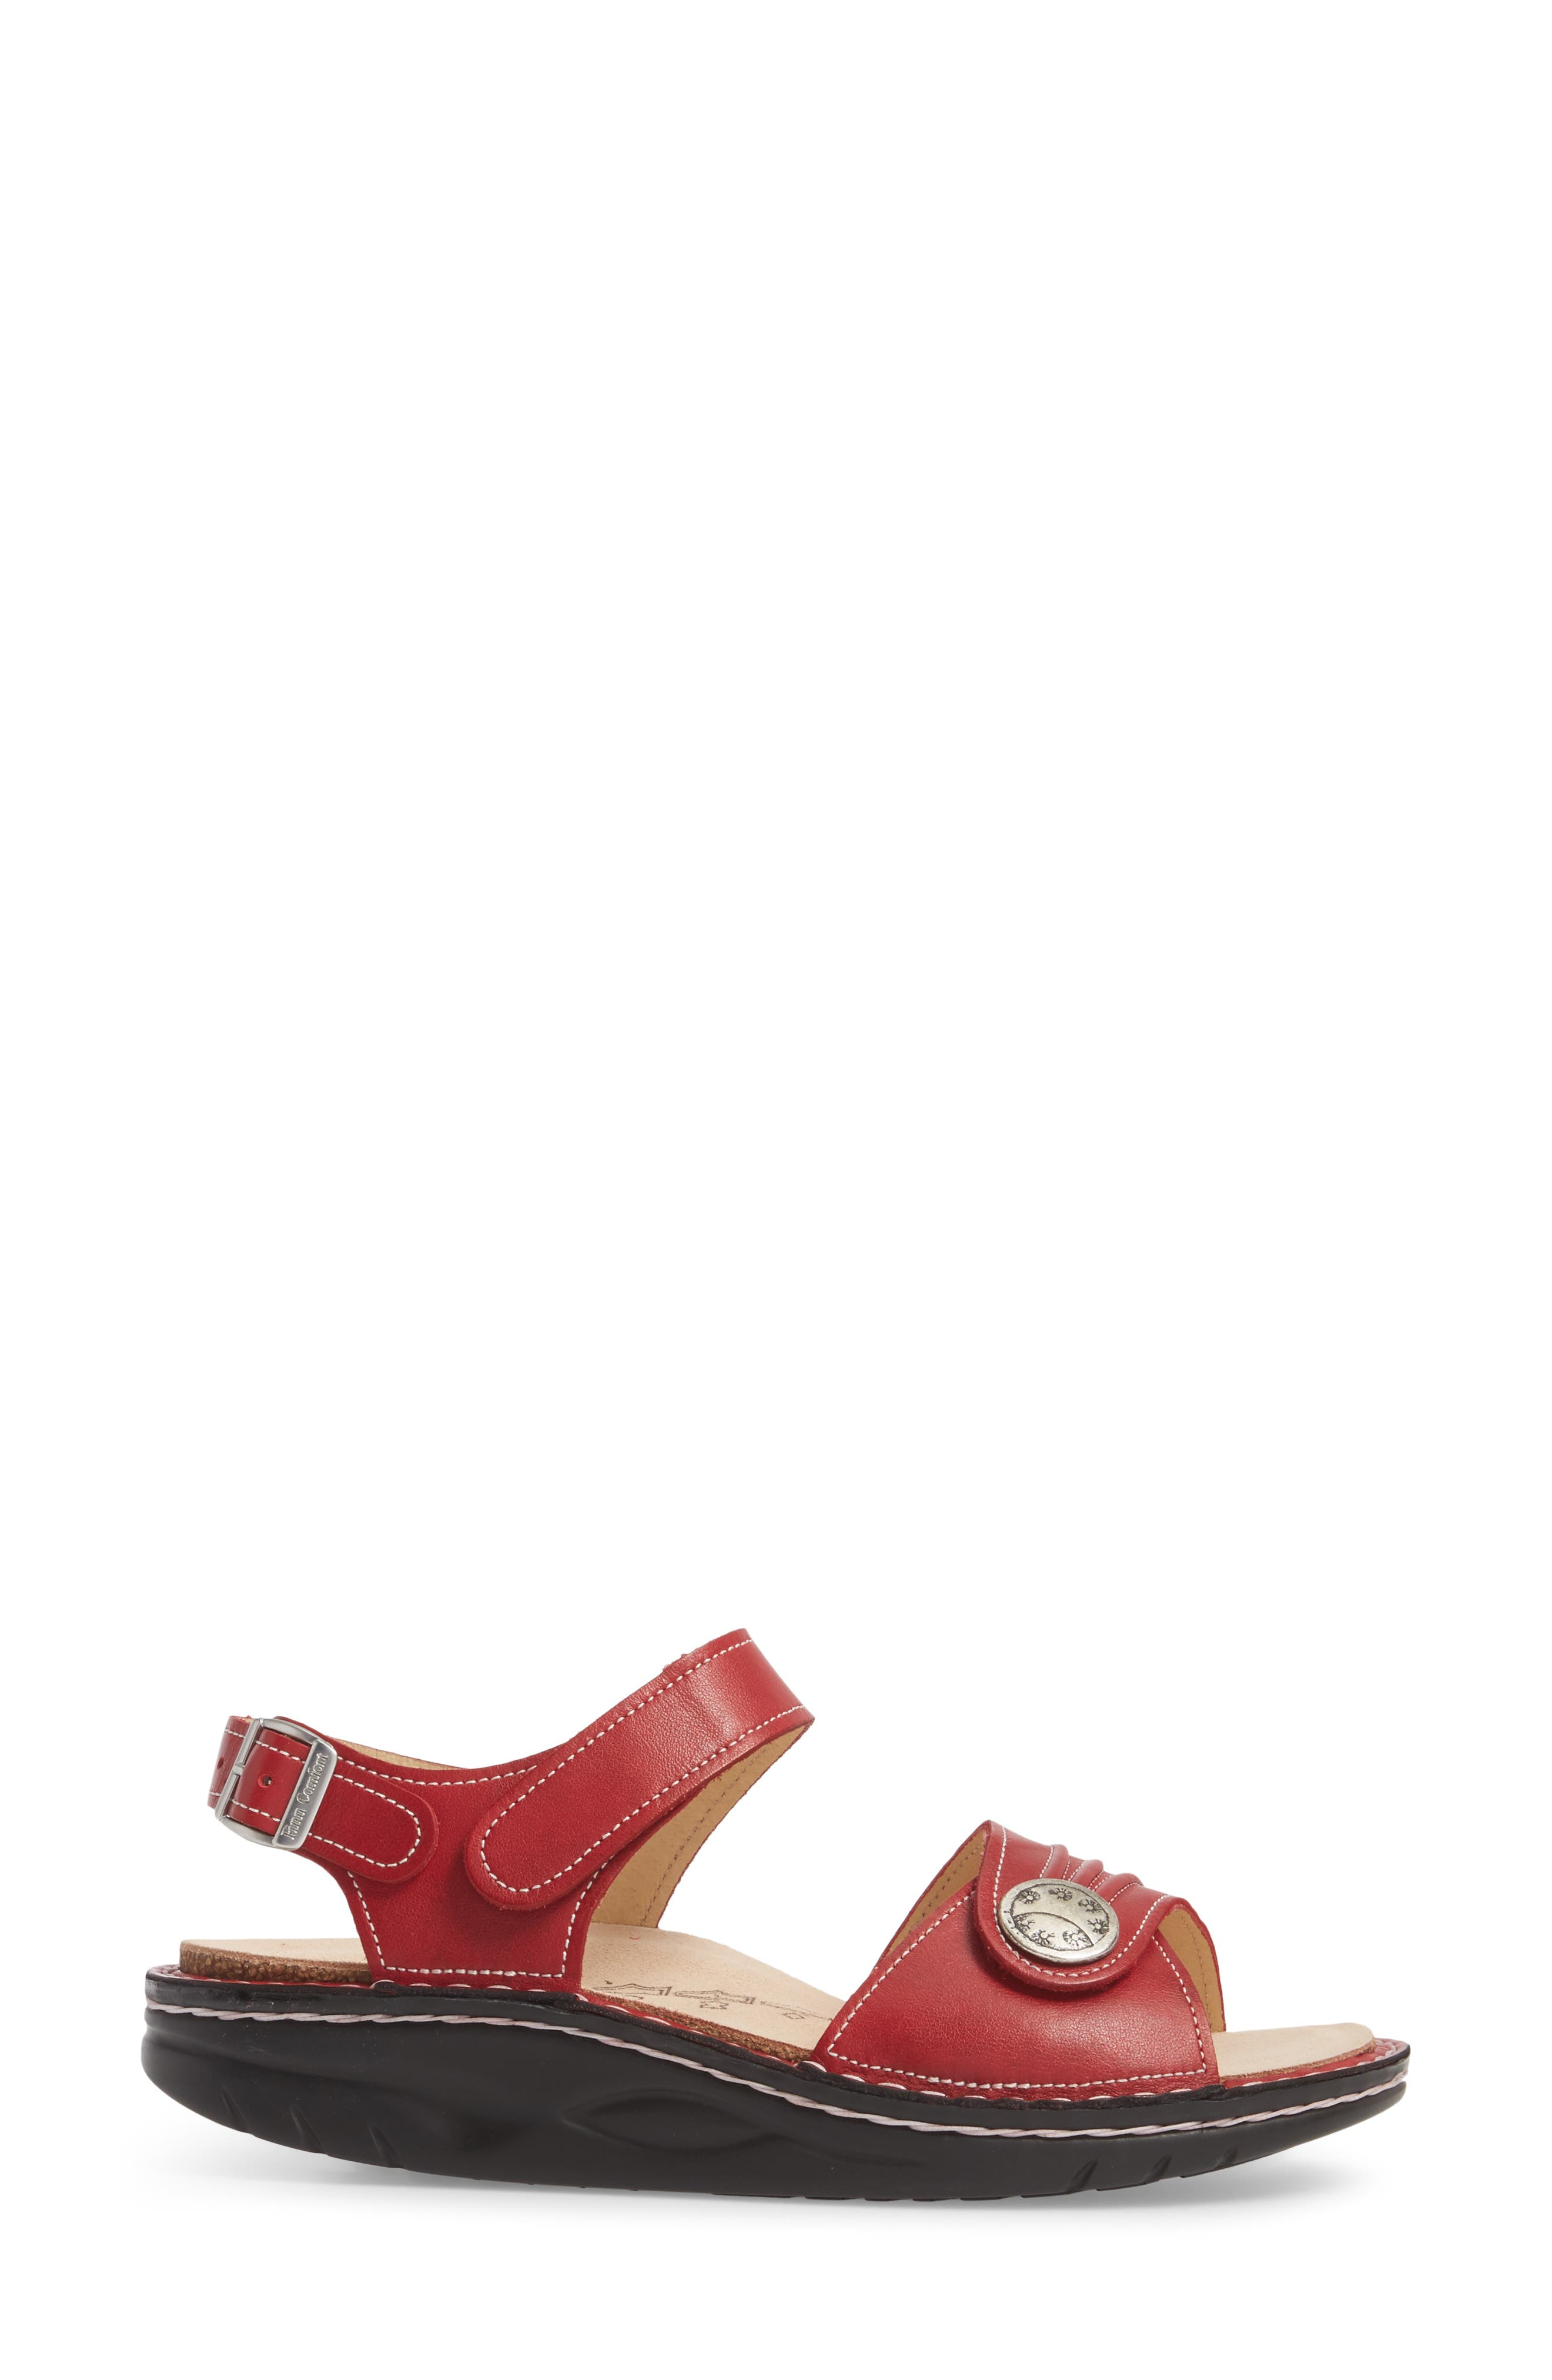 FINNAMIC by Finn Comfort 'Sausalito' Sandal,                             Alternate thumbnail 3, color,                             RED LEATHER